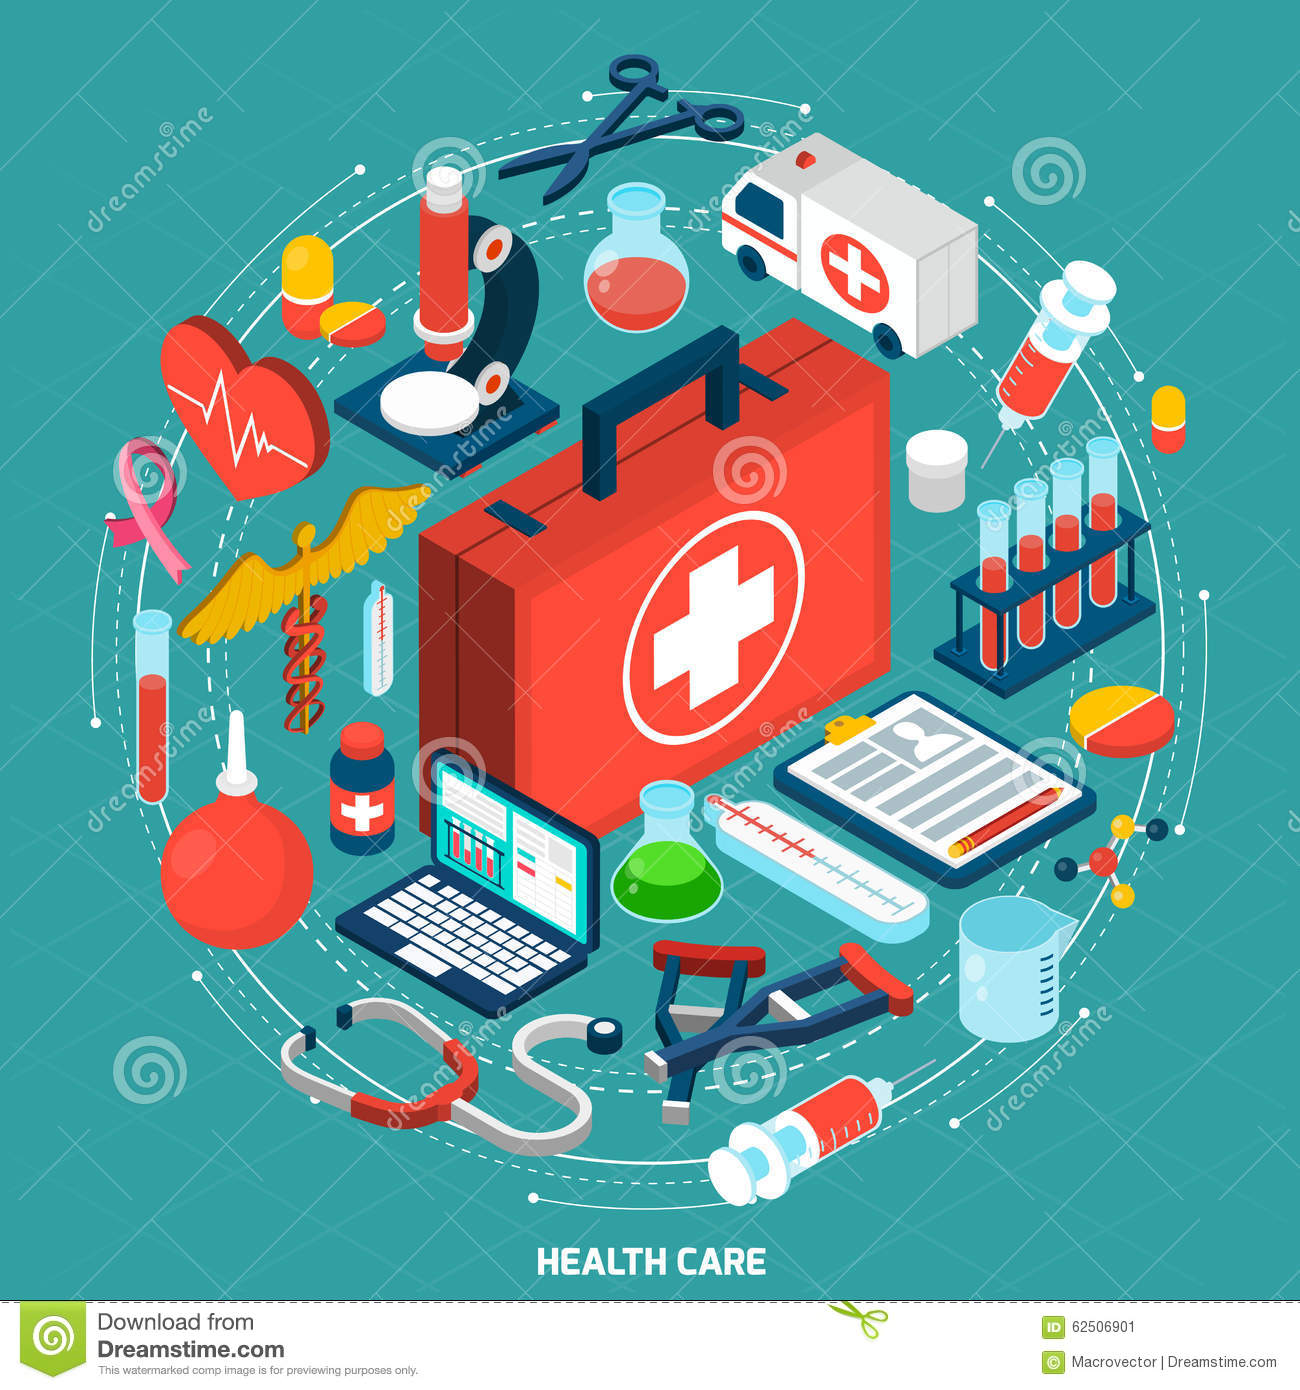 Healthcare Poster Stock Vector - Image: 62984644